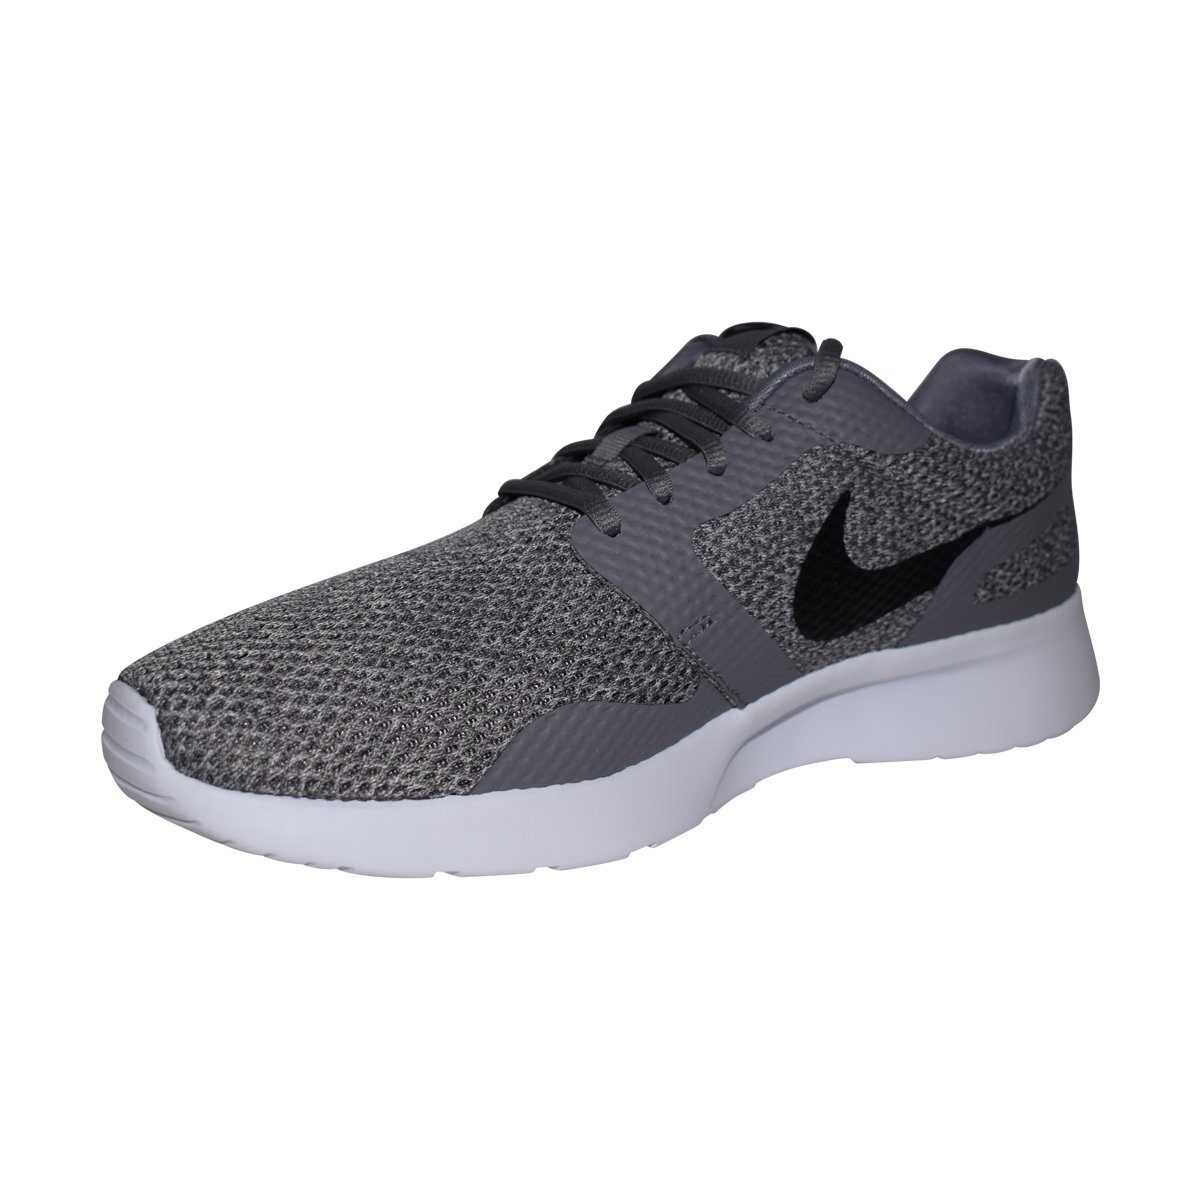 Nike Women's Kaishi Running Shoe B07C7LDHQ5 11.5M|Gunsmoke/ Black-white